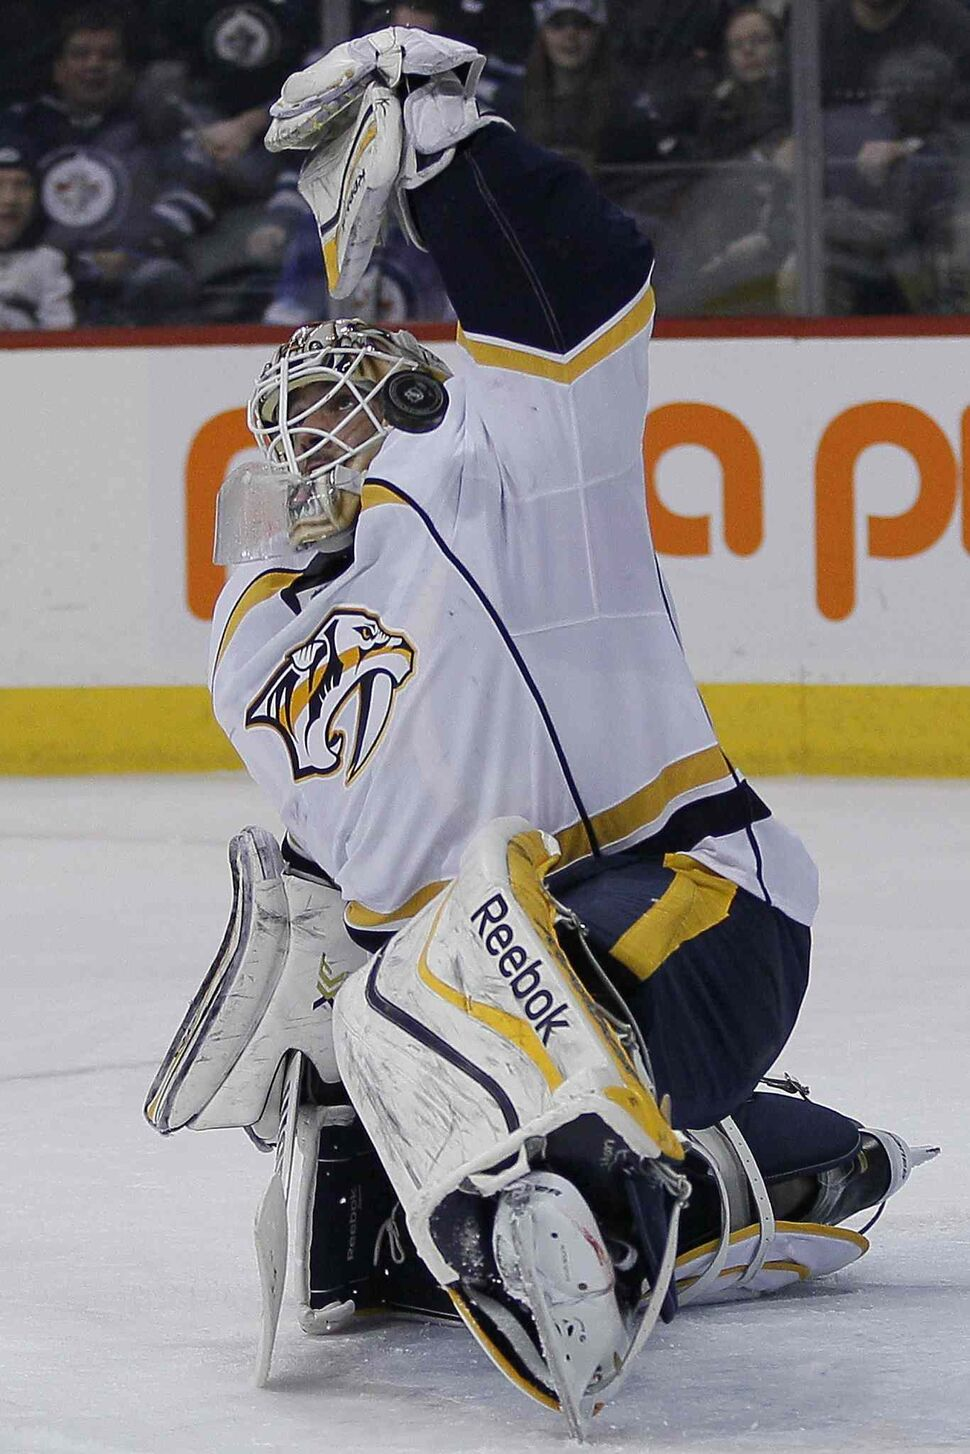 Nashville Predators' goaltender Carter Hutton (30) saves Winnipeg Jets' Blake Wheeler's (26) shot but the puck goes off his leg and into the goal — the Jets' third during second period in Winnipeg on Tuesday. (John Woods / Winnipeg Free Press)